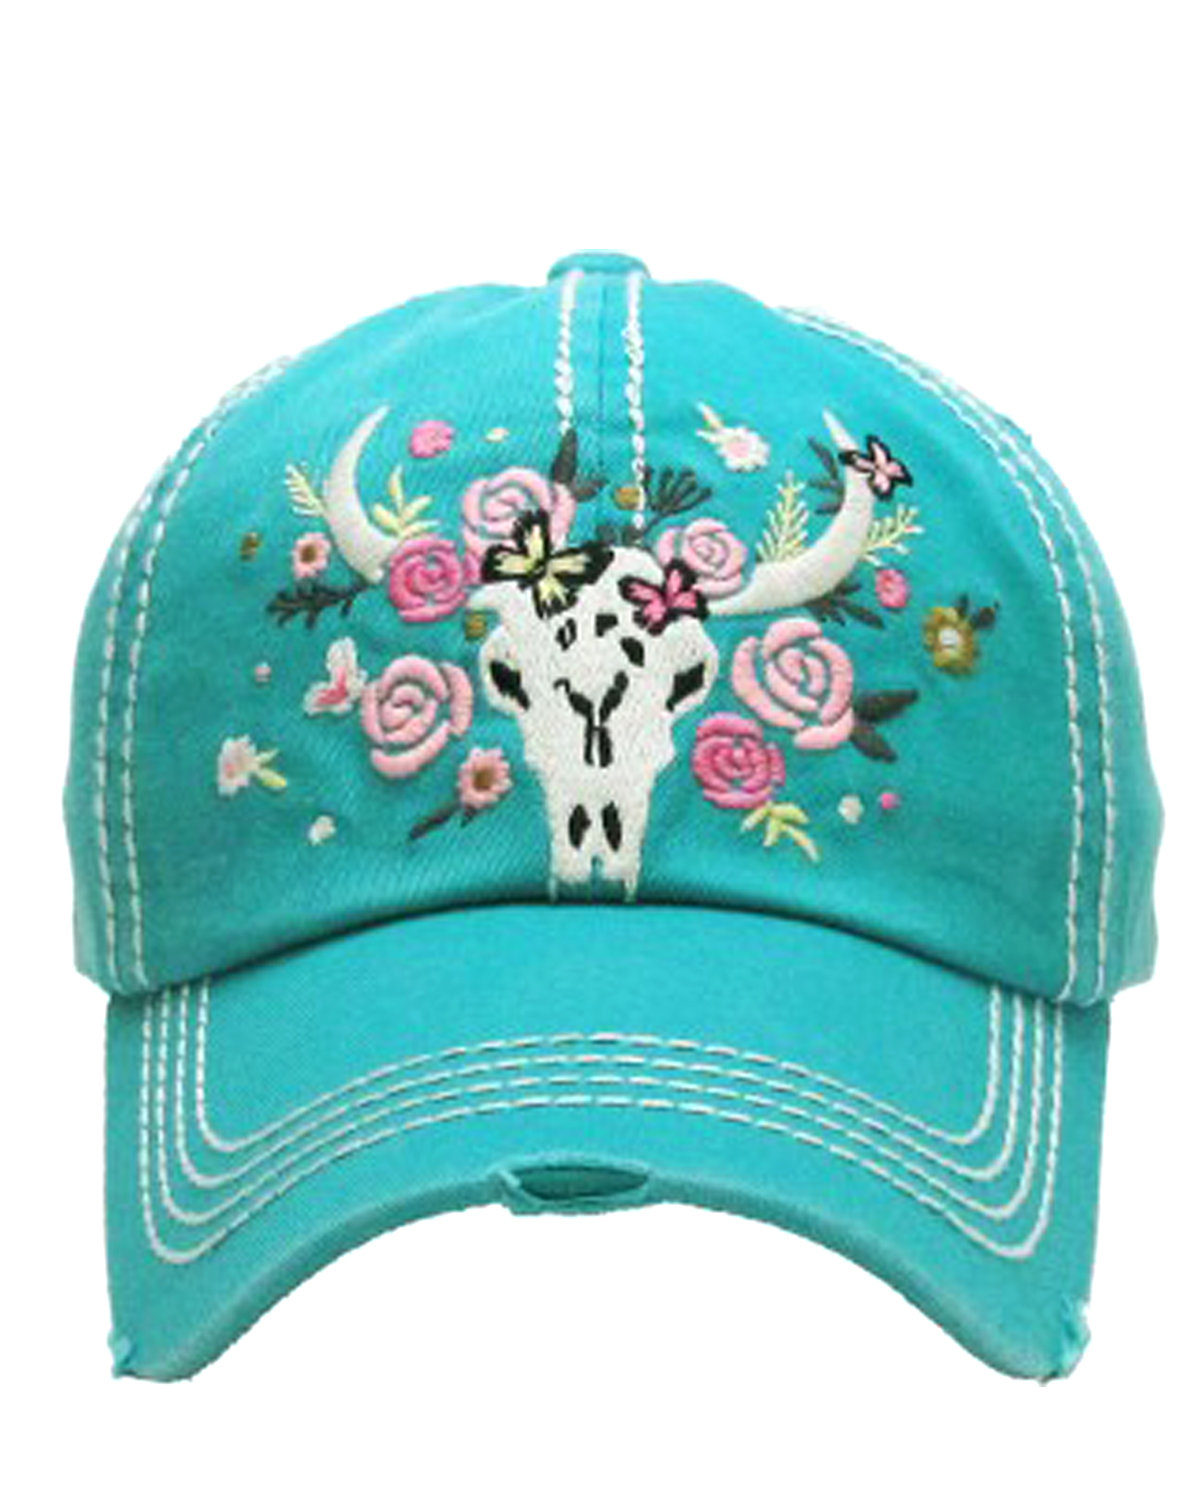 KBV1124(TQ)-wholesale-cap-floral-cow-skull-vintage-torn-stitch-baseball-cotton-embroidery-steer-rose-longhorn(0).jpg